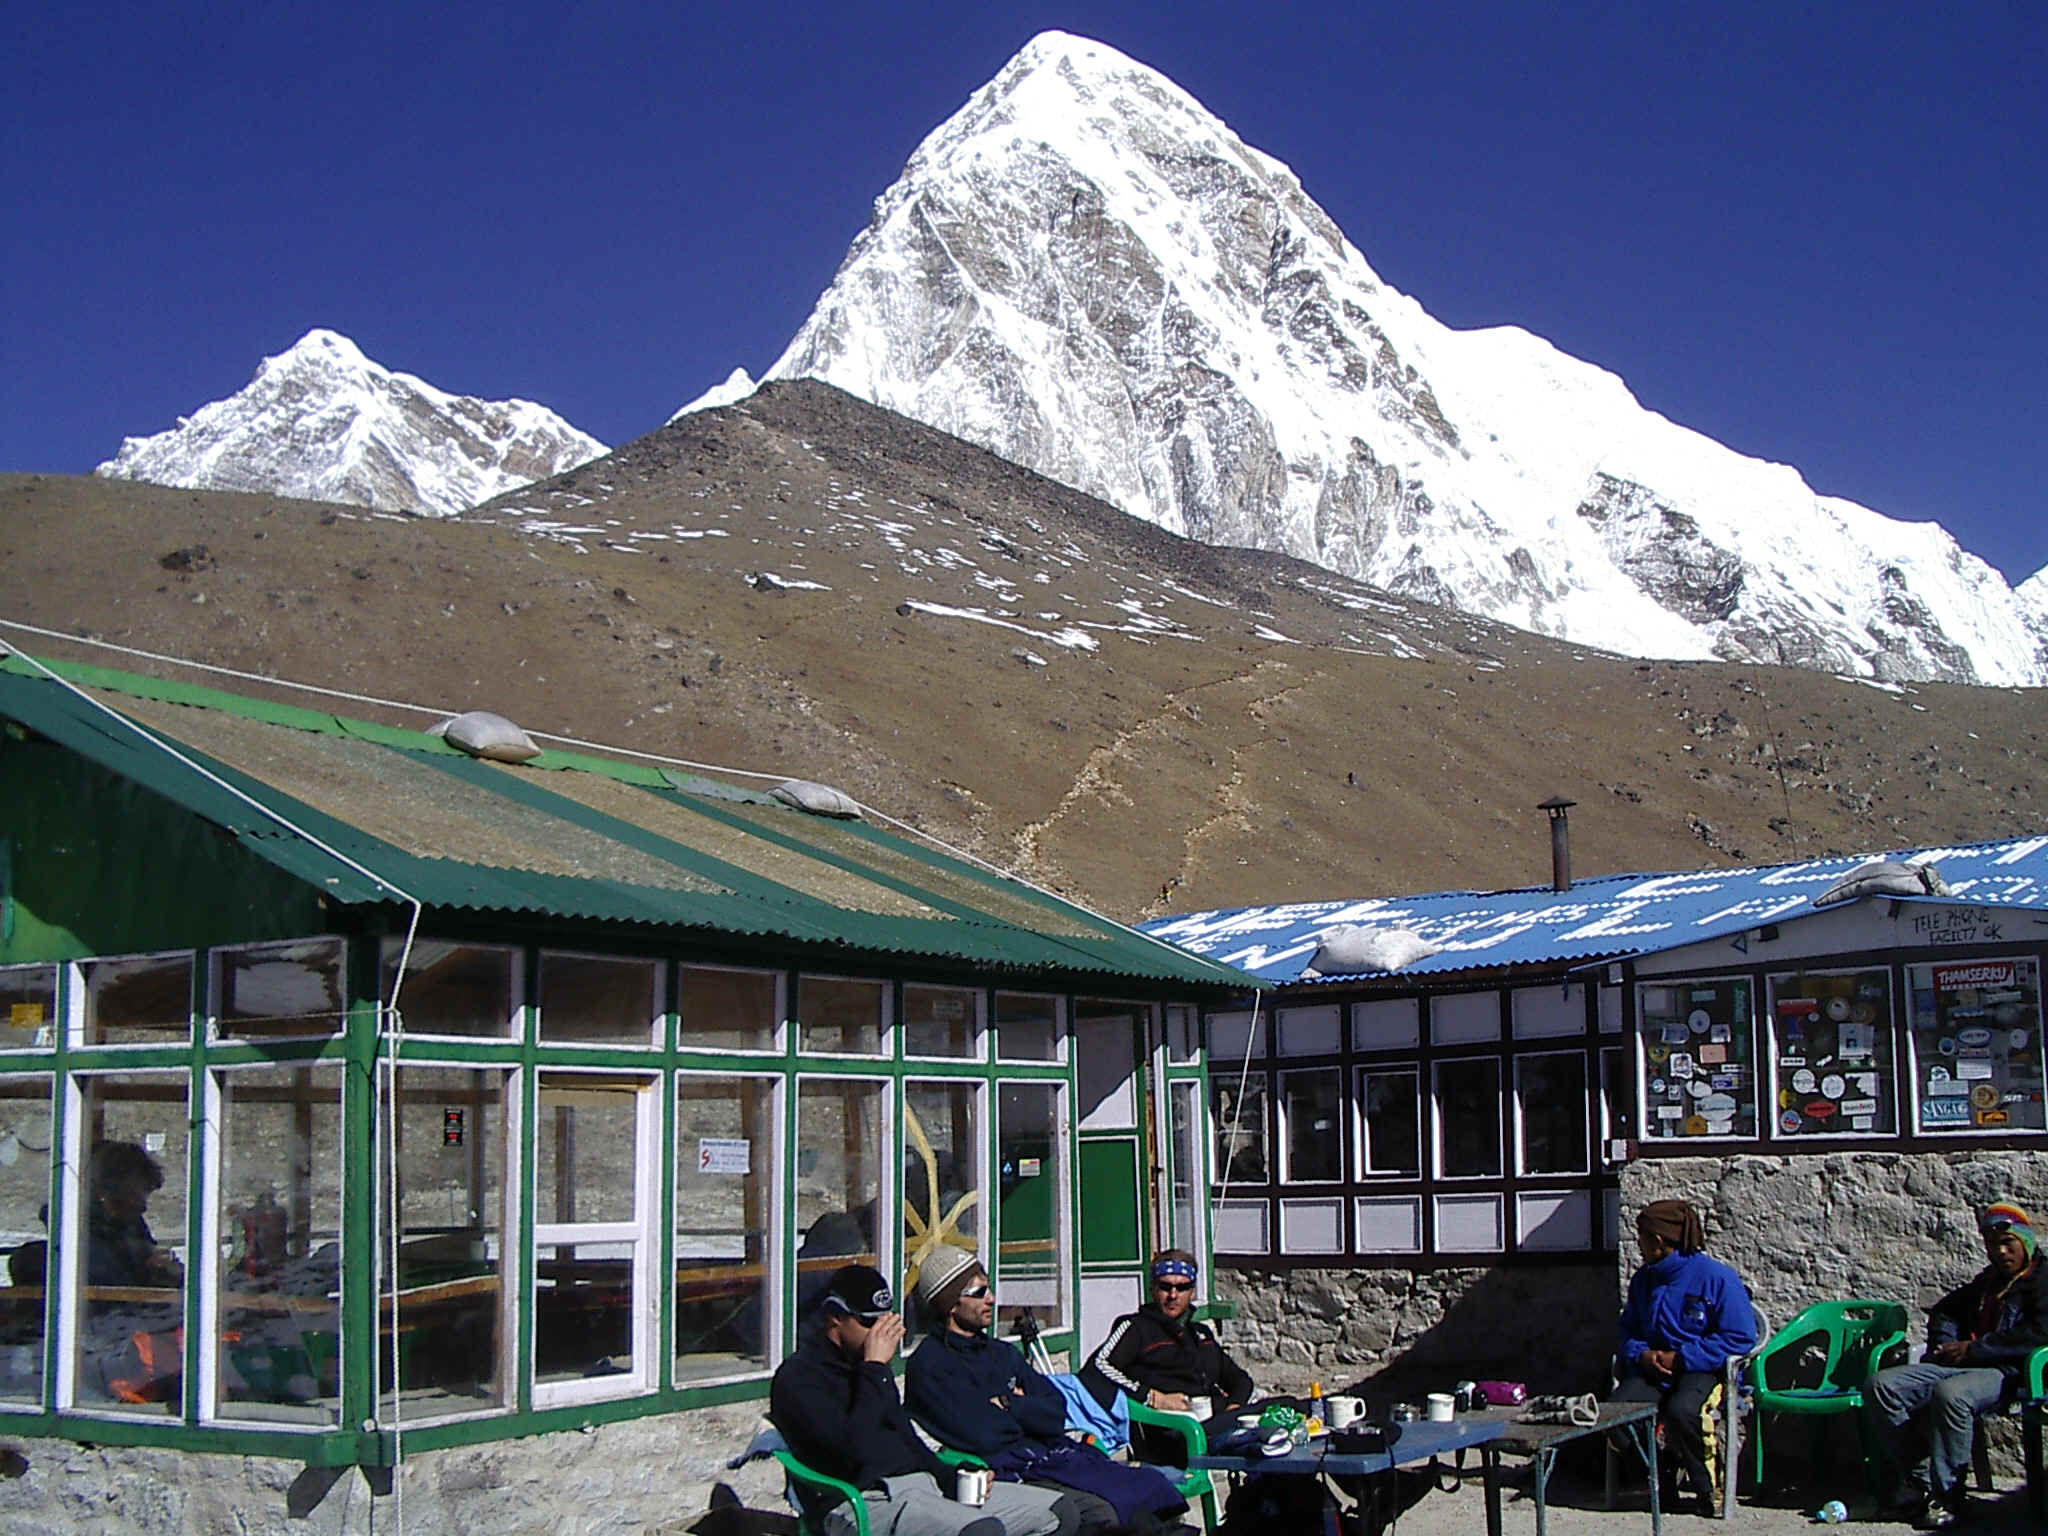 Gorak Shep lodge at the base of Kala Pattar and Mt. Pumori